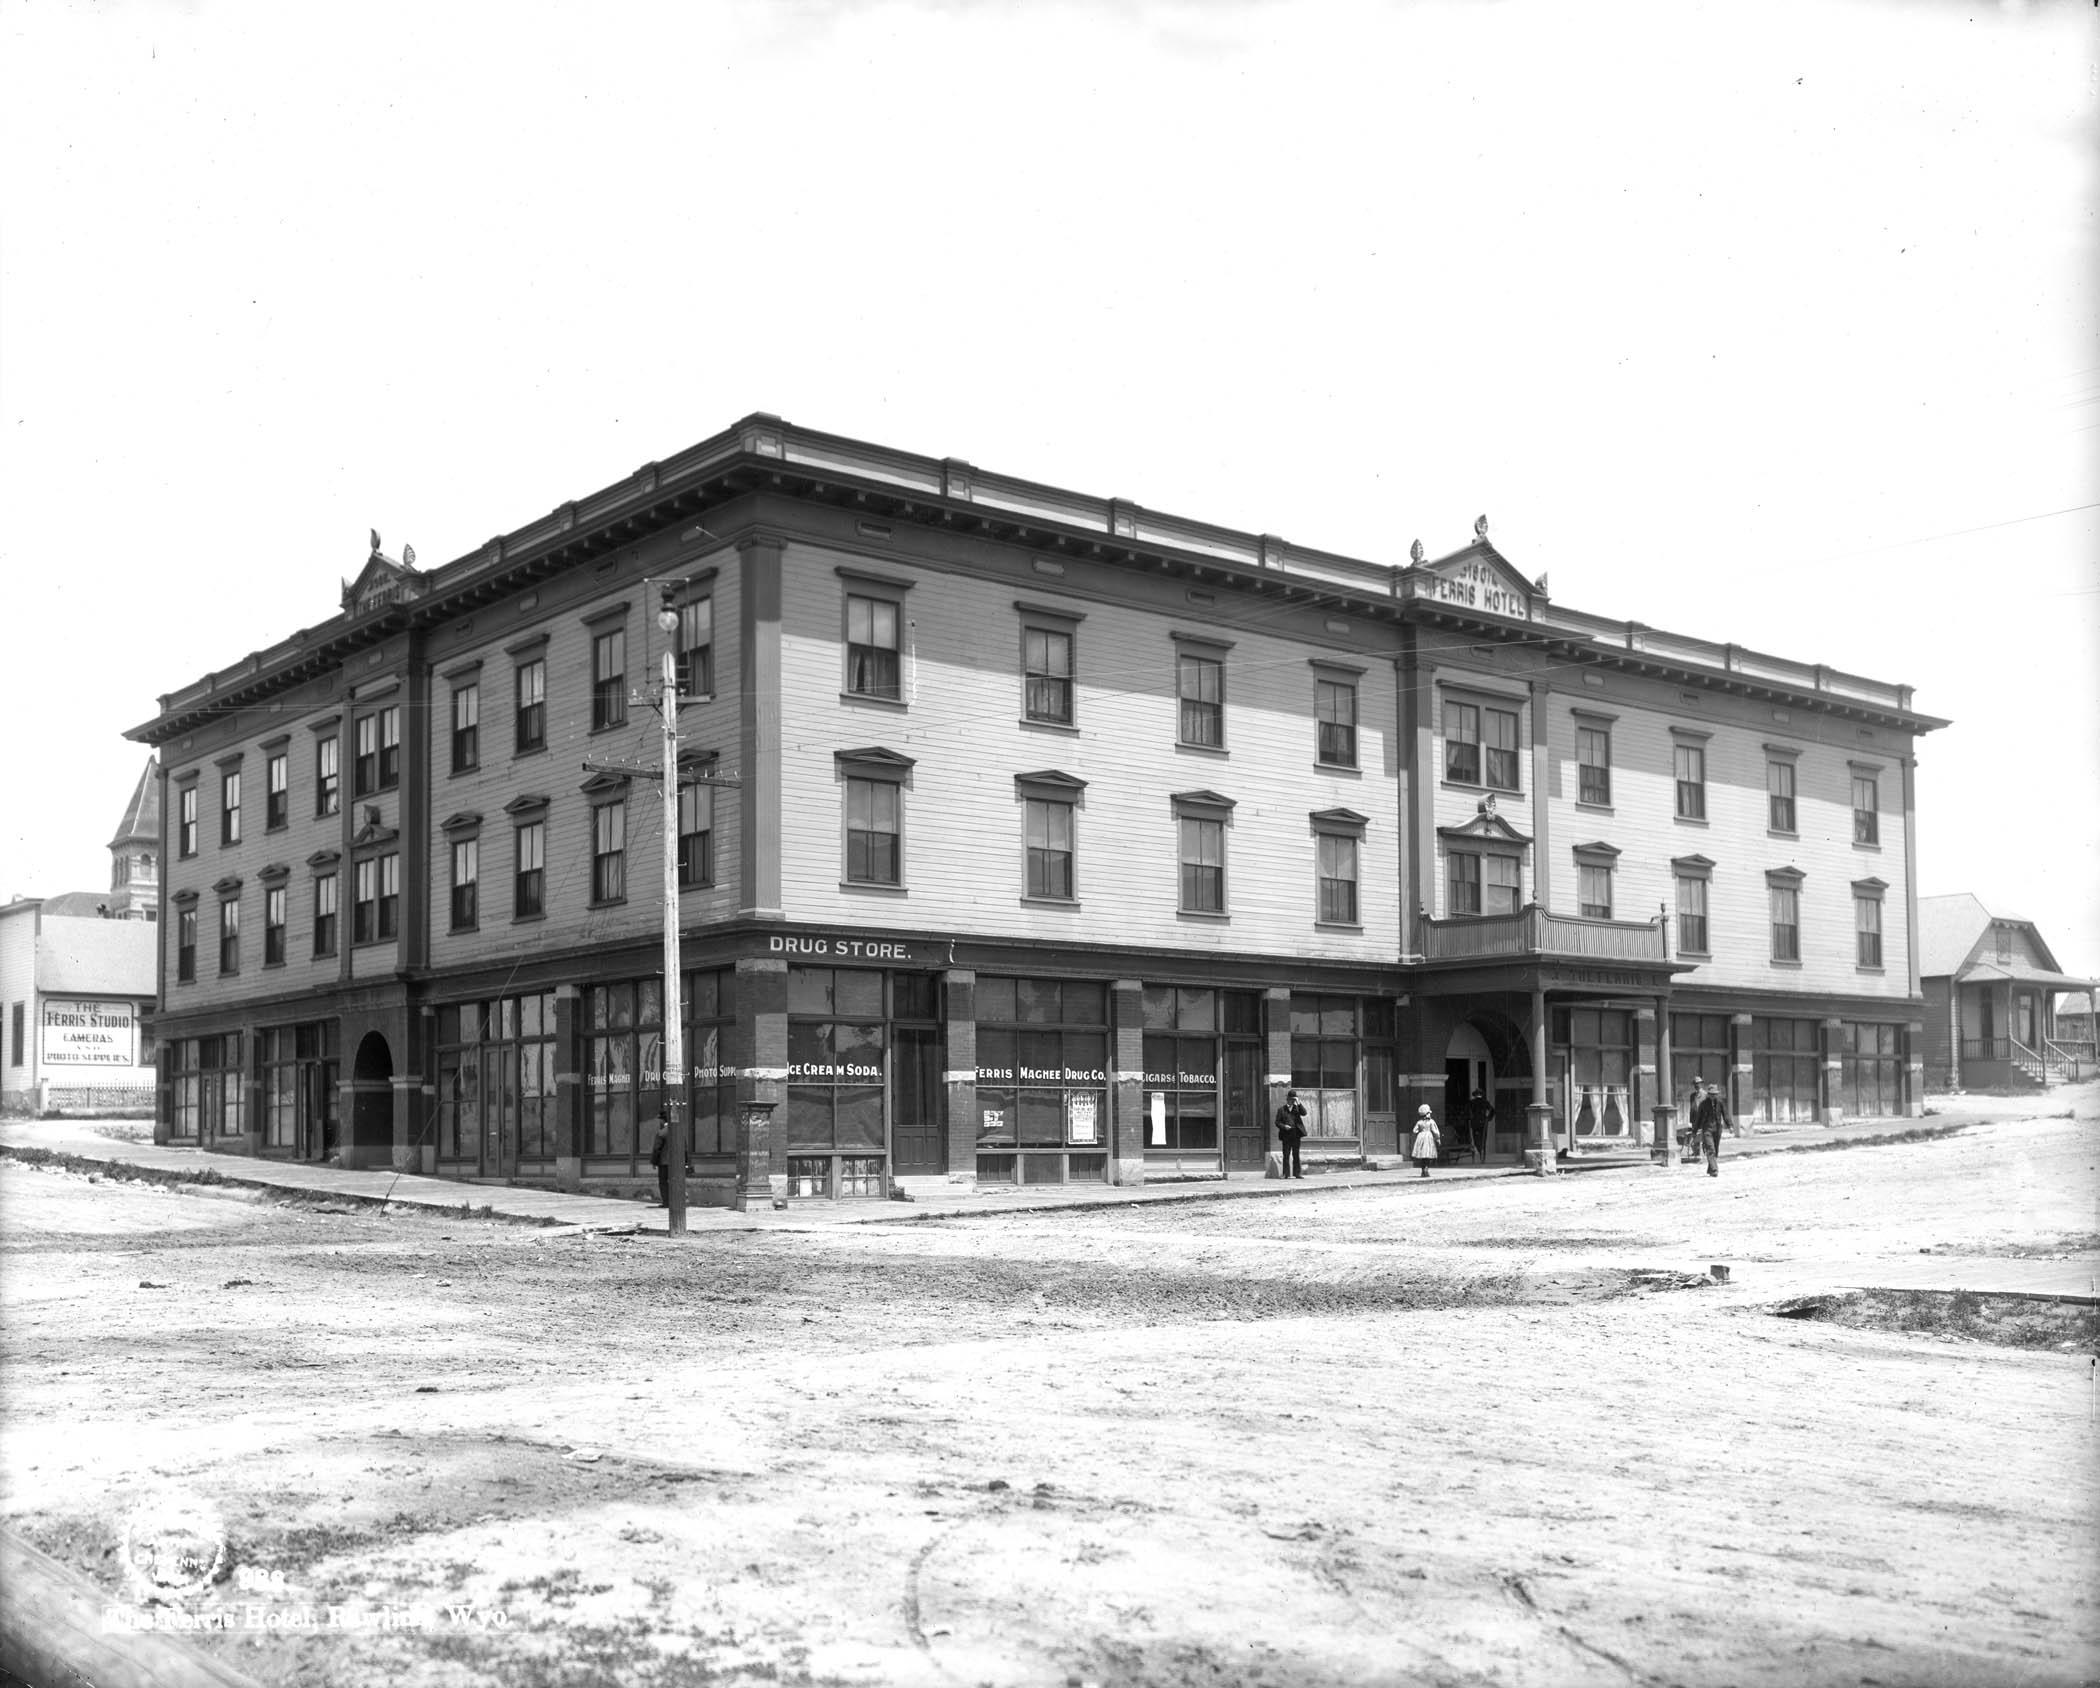 The Ferris Hotel Rawlins 1903 Rephotography Book Shows What S Changed Stayed Same In